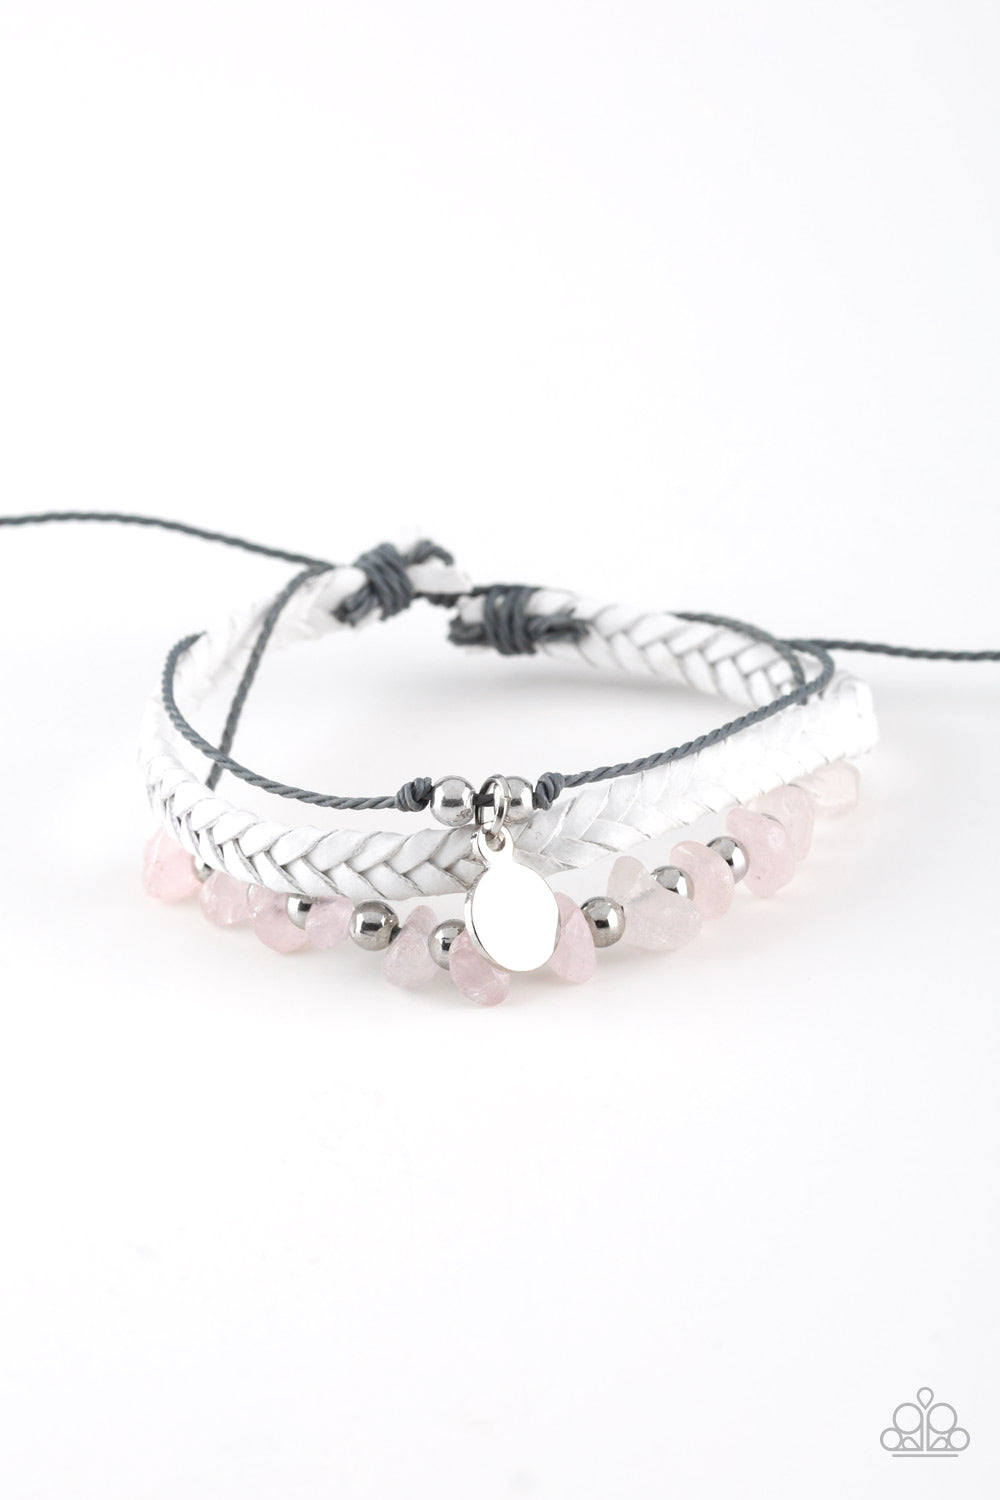 Paparazzi Accessories - A PEACE Of Work - Pink Bracelet - JMJ Jewelry Collection